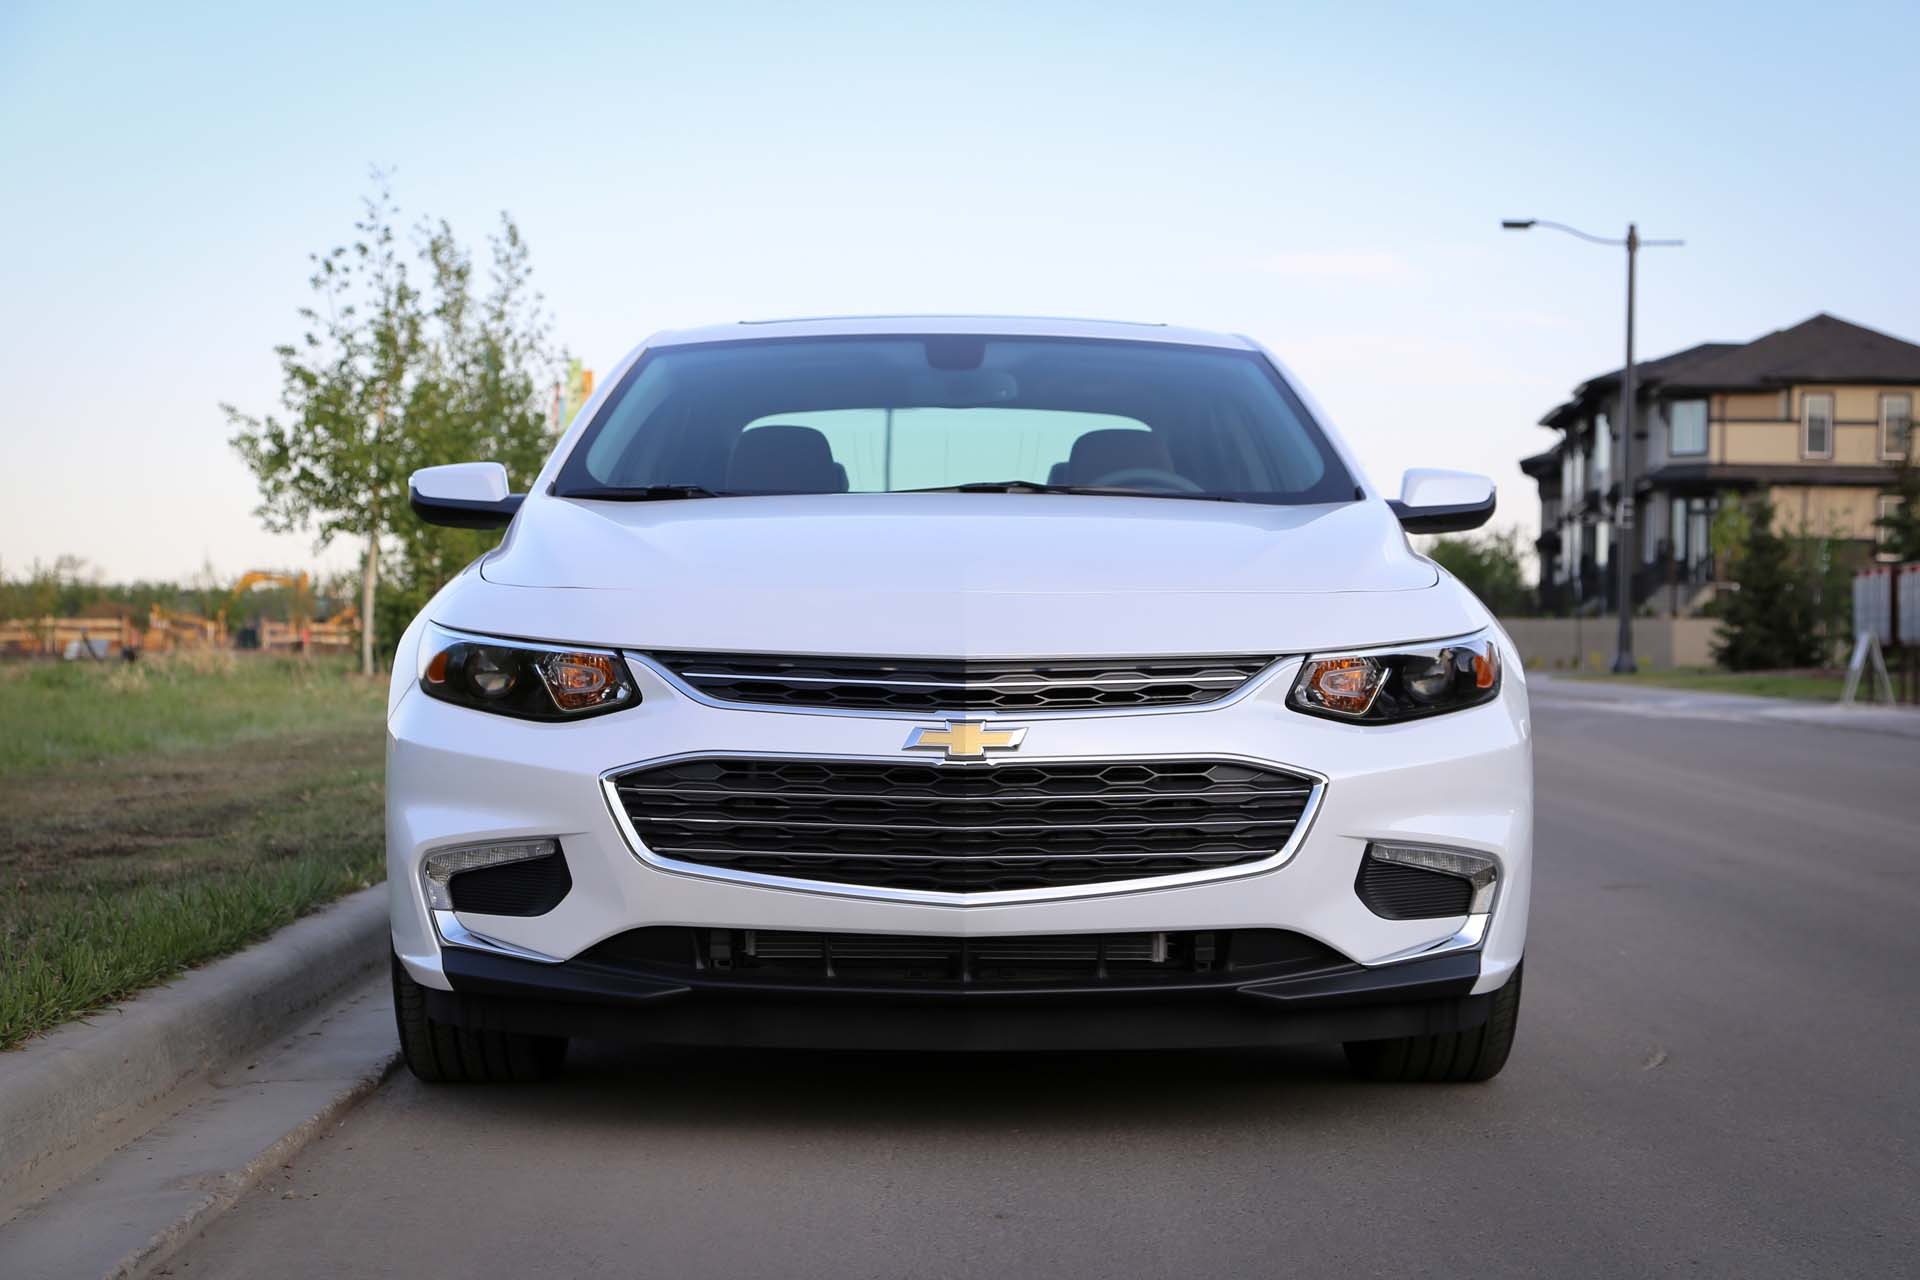 2017 chevy malibu test drive upcoming chevrolet. Black Bedroom Furniture Sets. Home Design Ideas